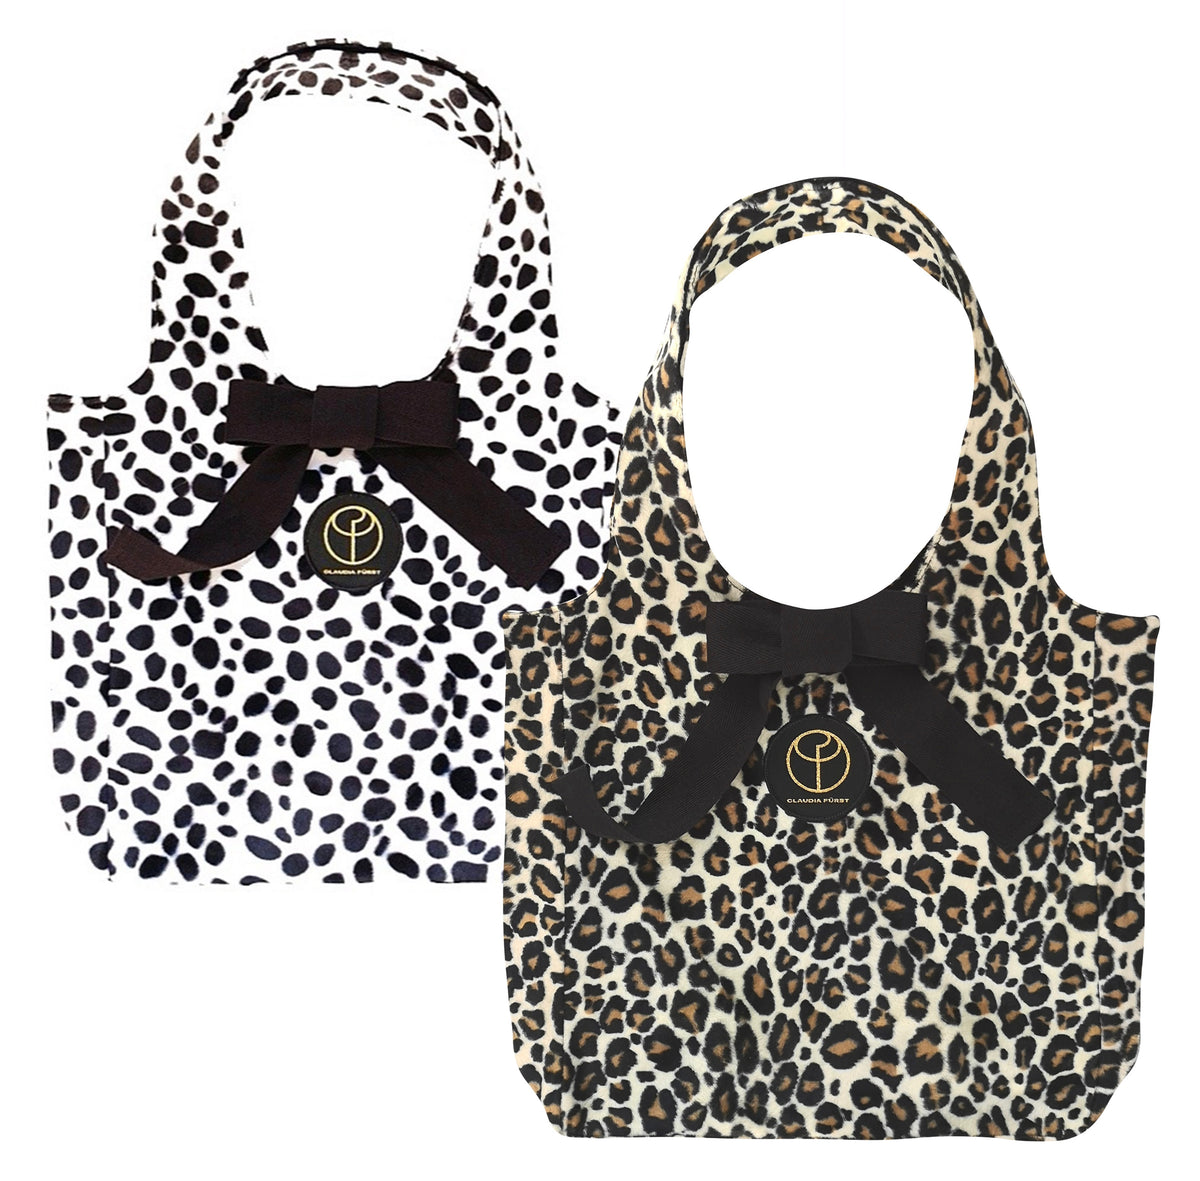 CLAUDIA FÜRST • animal print • faux fur • handbags